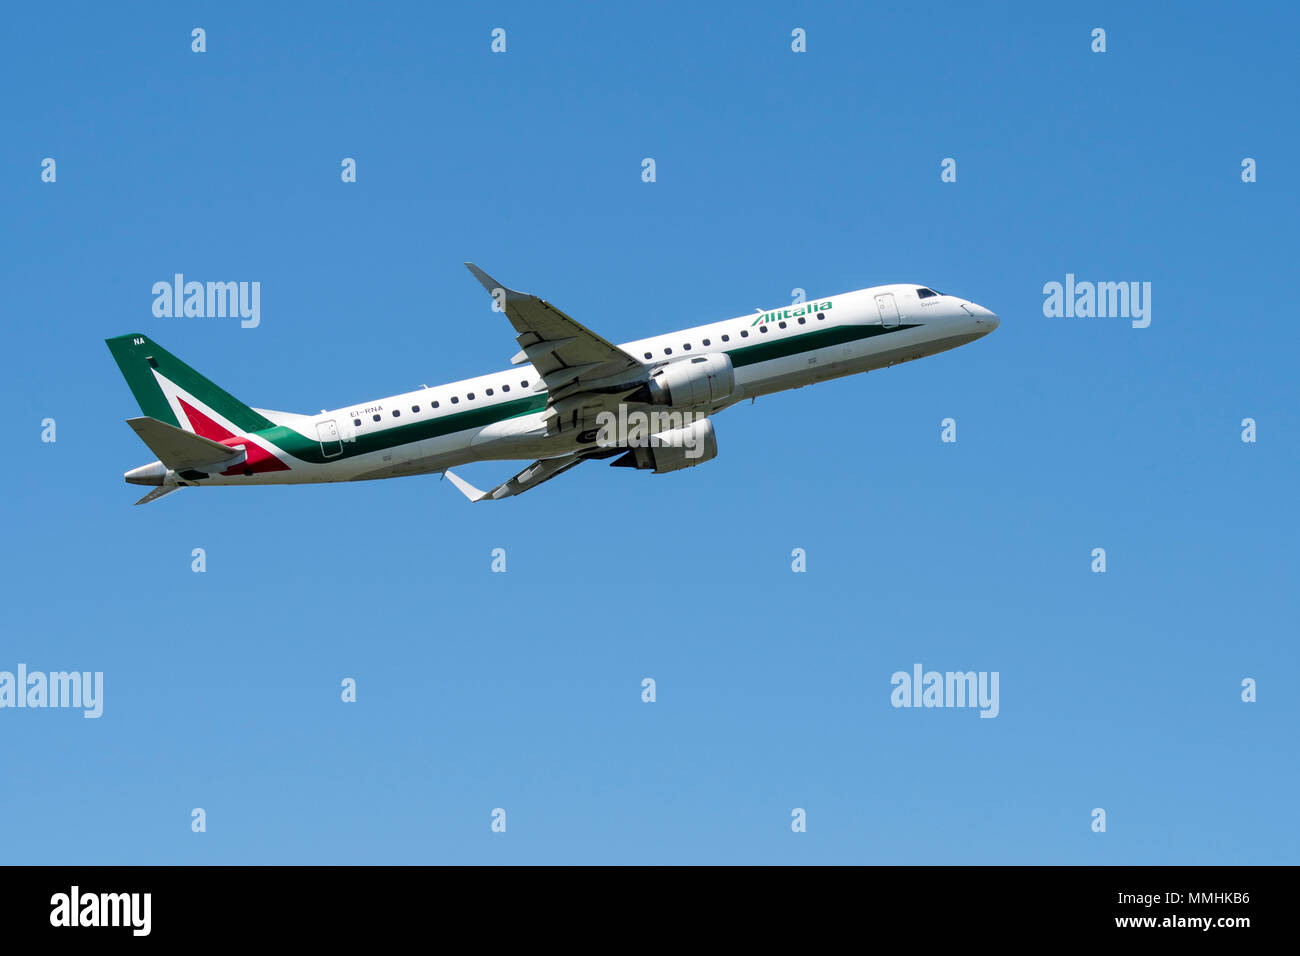 Embraer ERJ-190-100LR, narrow-body medium-range twin-engine jet airliner from Alitalia CityLiner, Italian airline in flight against blue sky - Stock Image